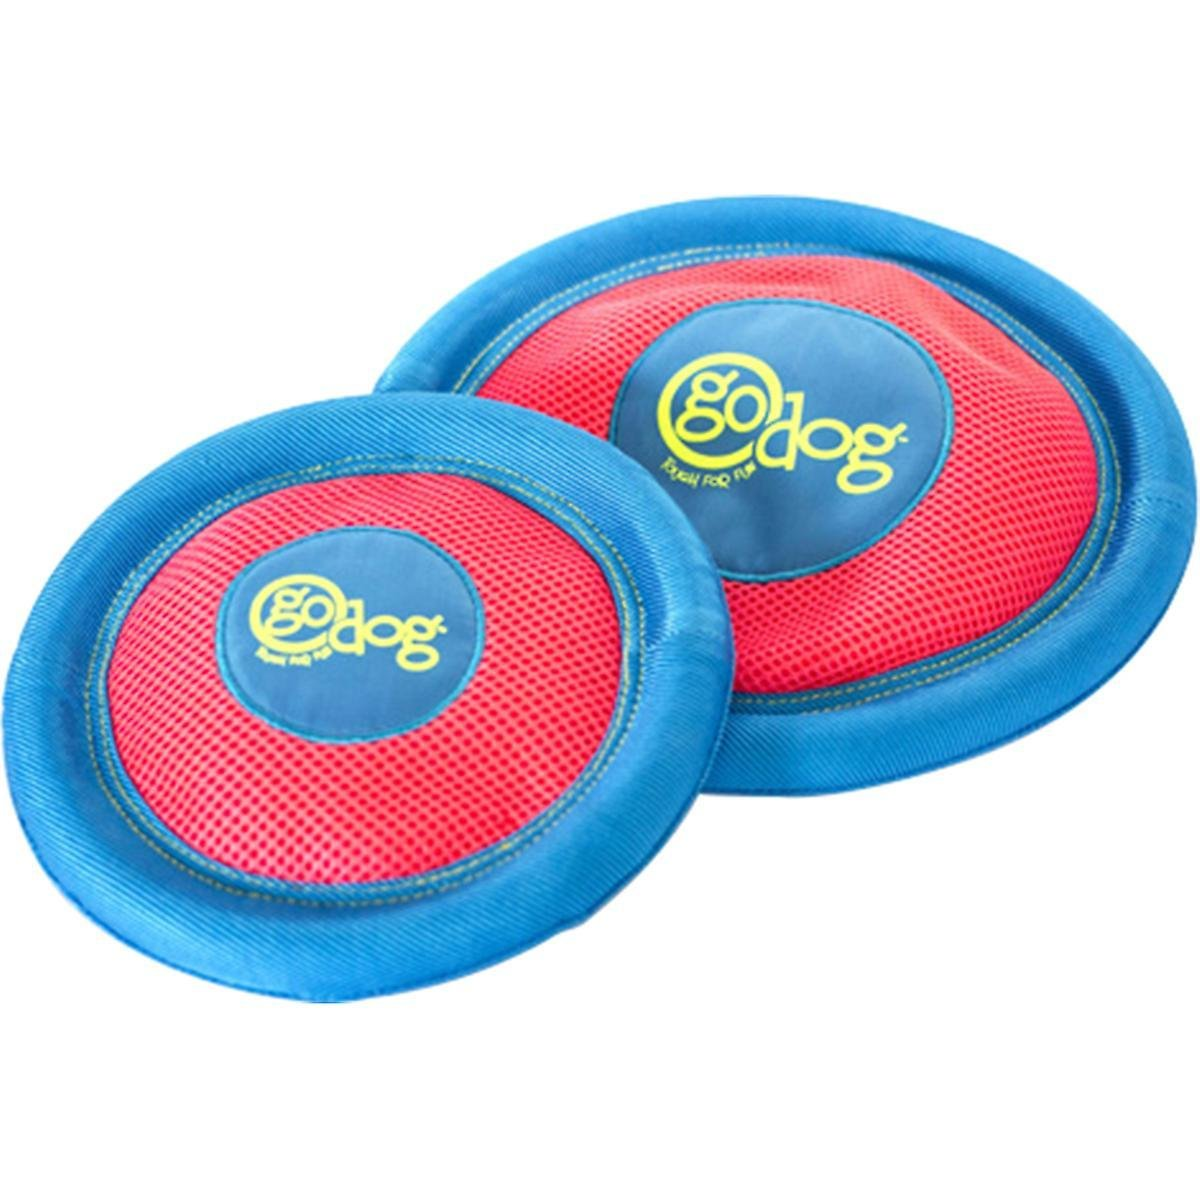 Go Dog Retrieval Ultimate Disc Large.